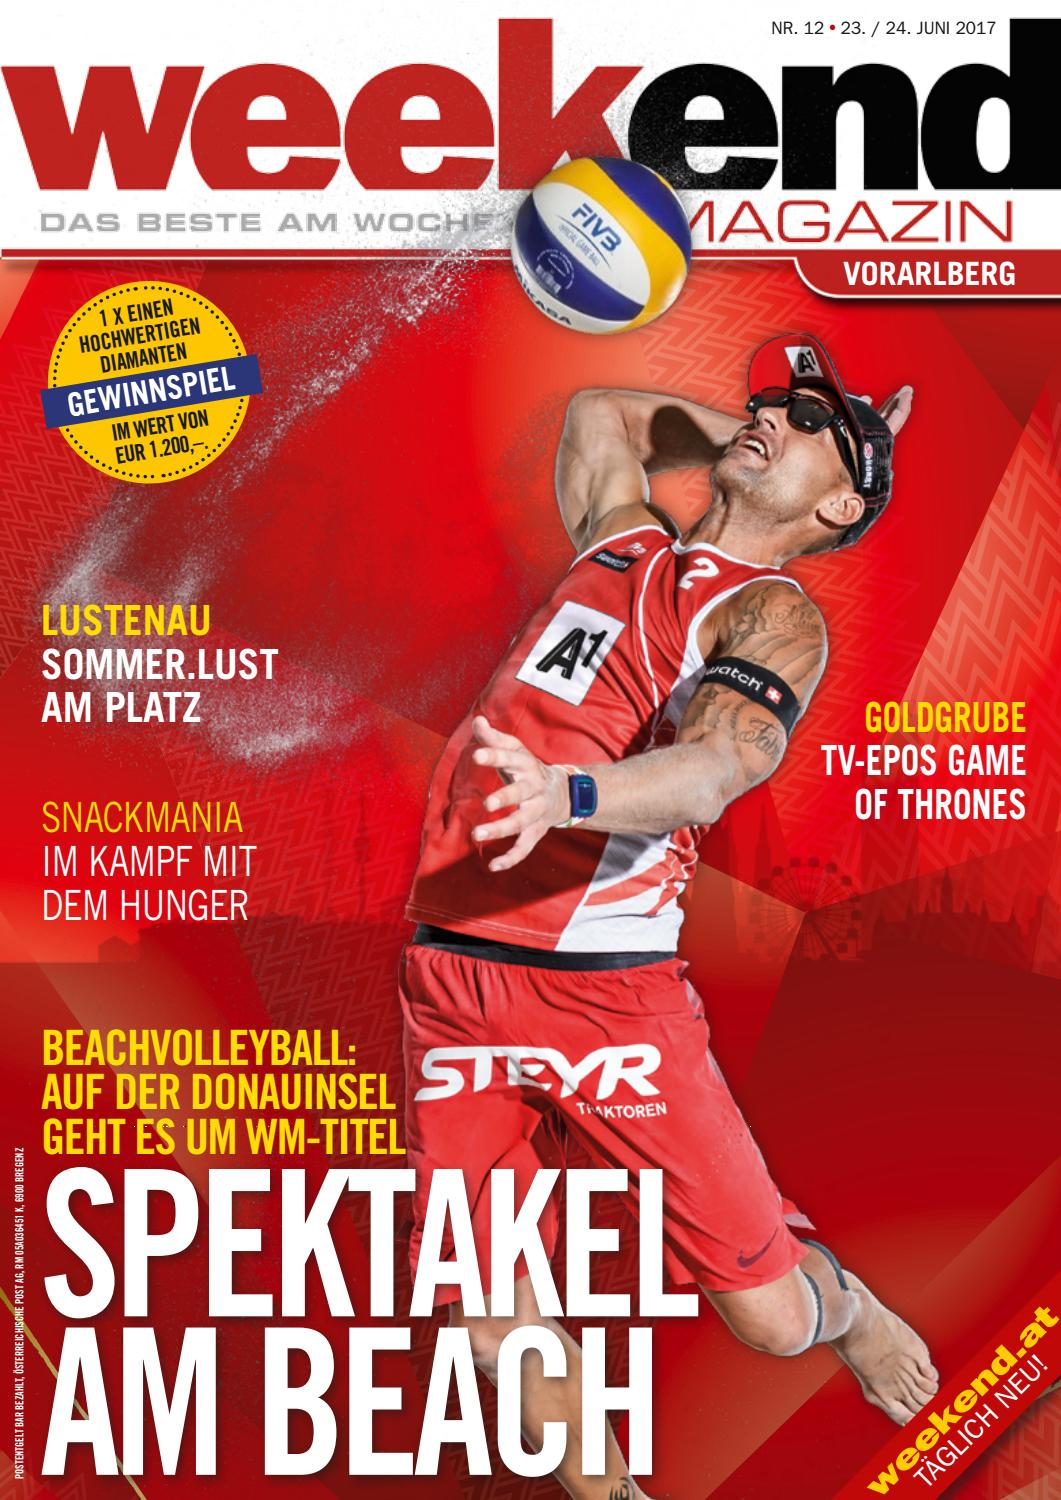 Weekend Magazin Vorarlberg 2017 KW 25 By Weekend Magazin Vorarlberg   Issuu